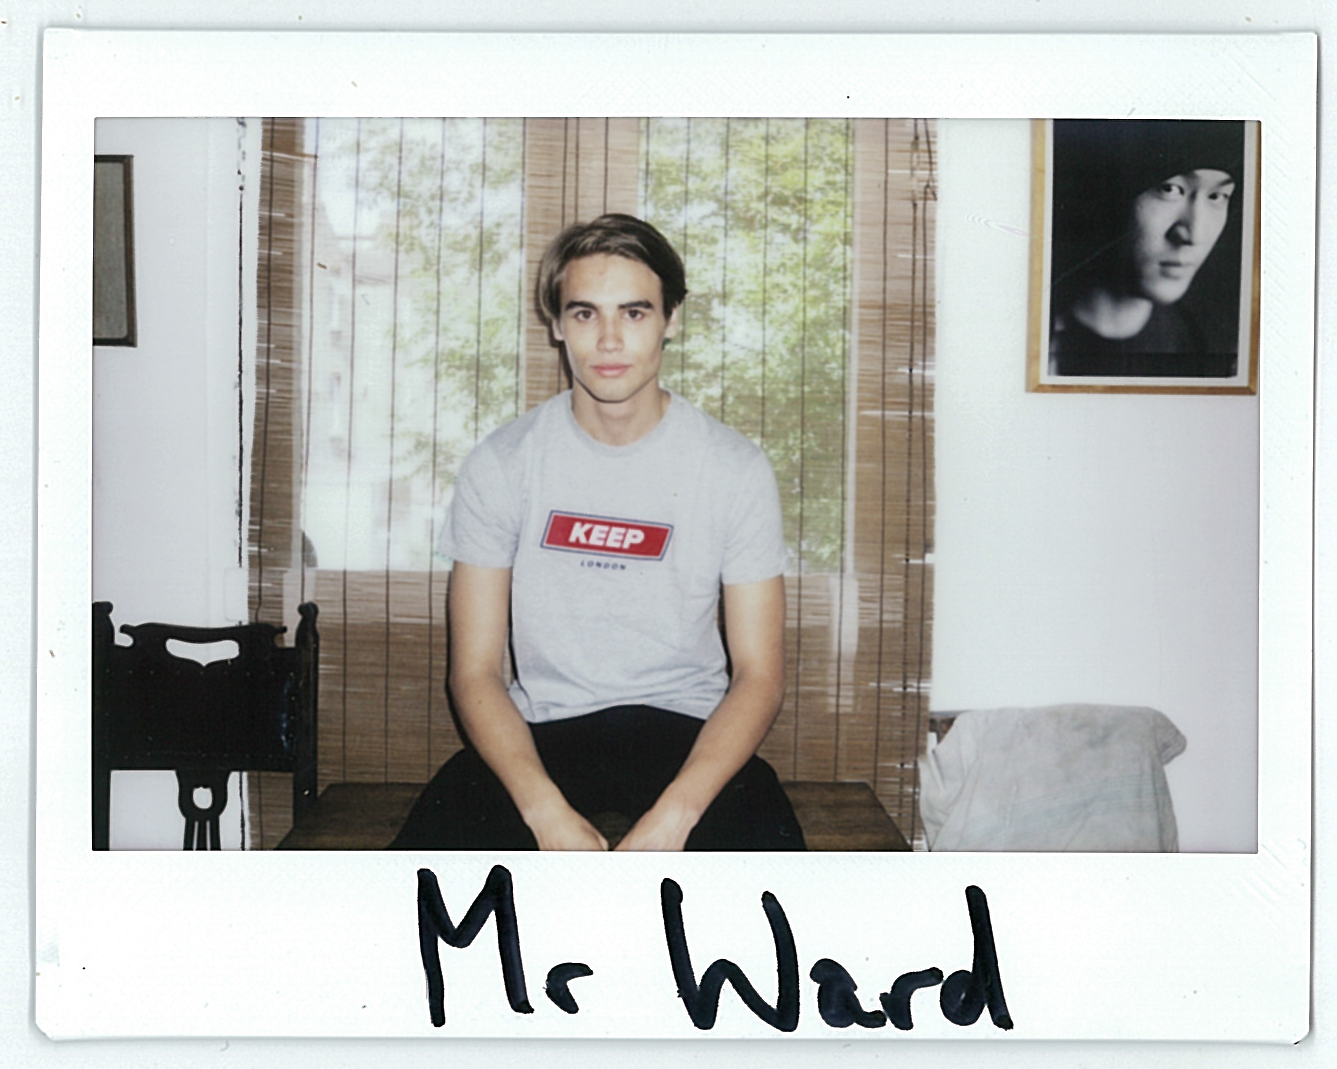 Mr Ward (Karl)